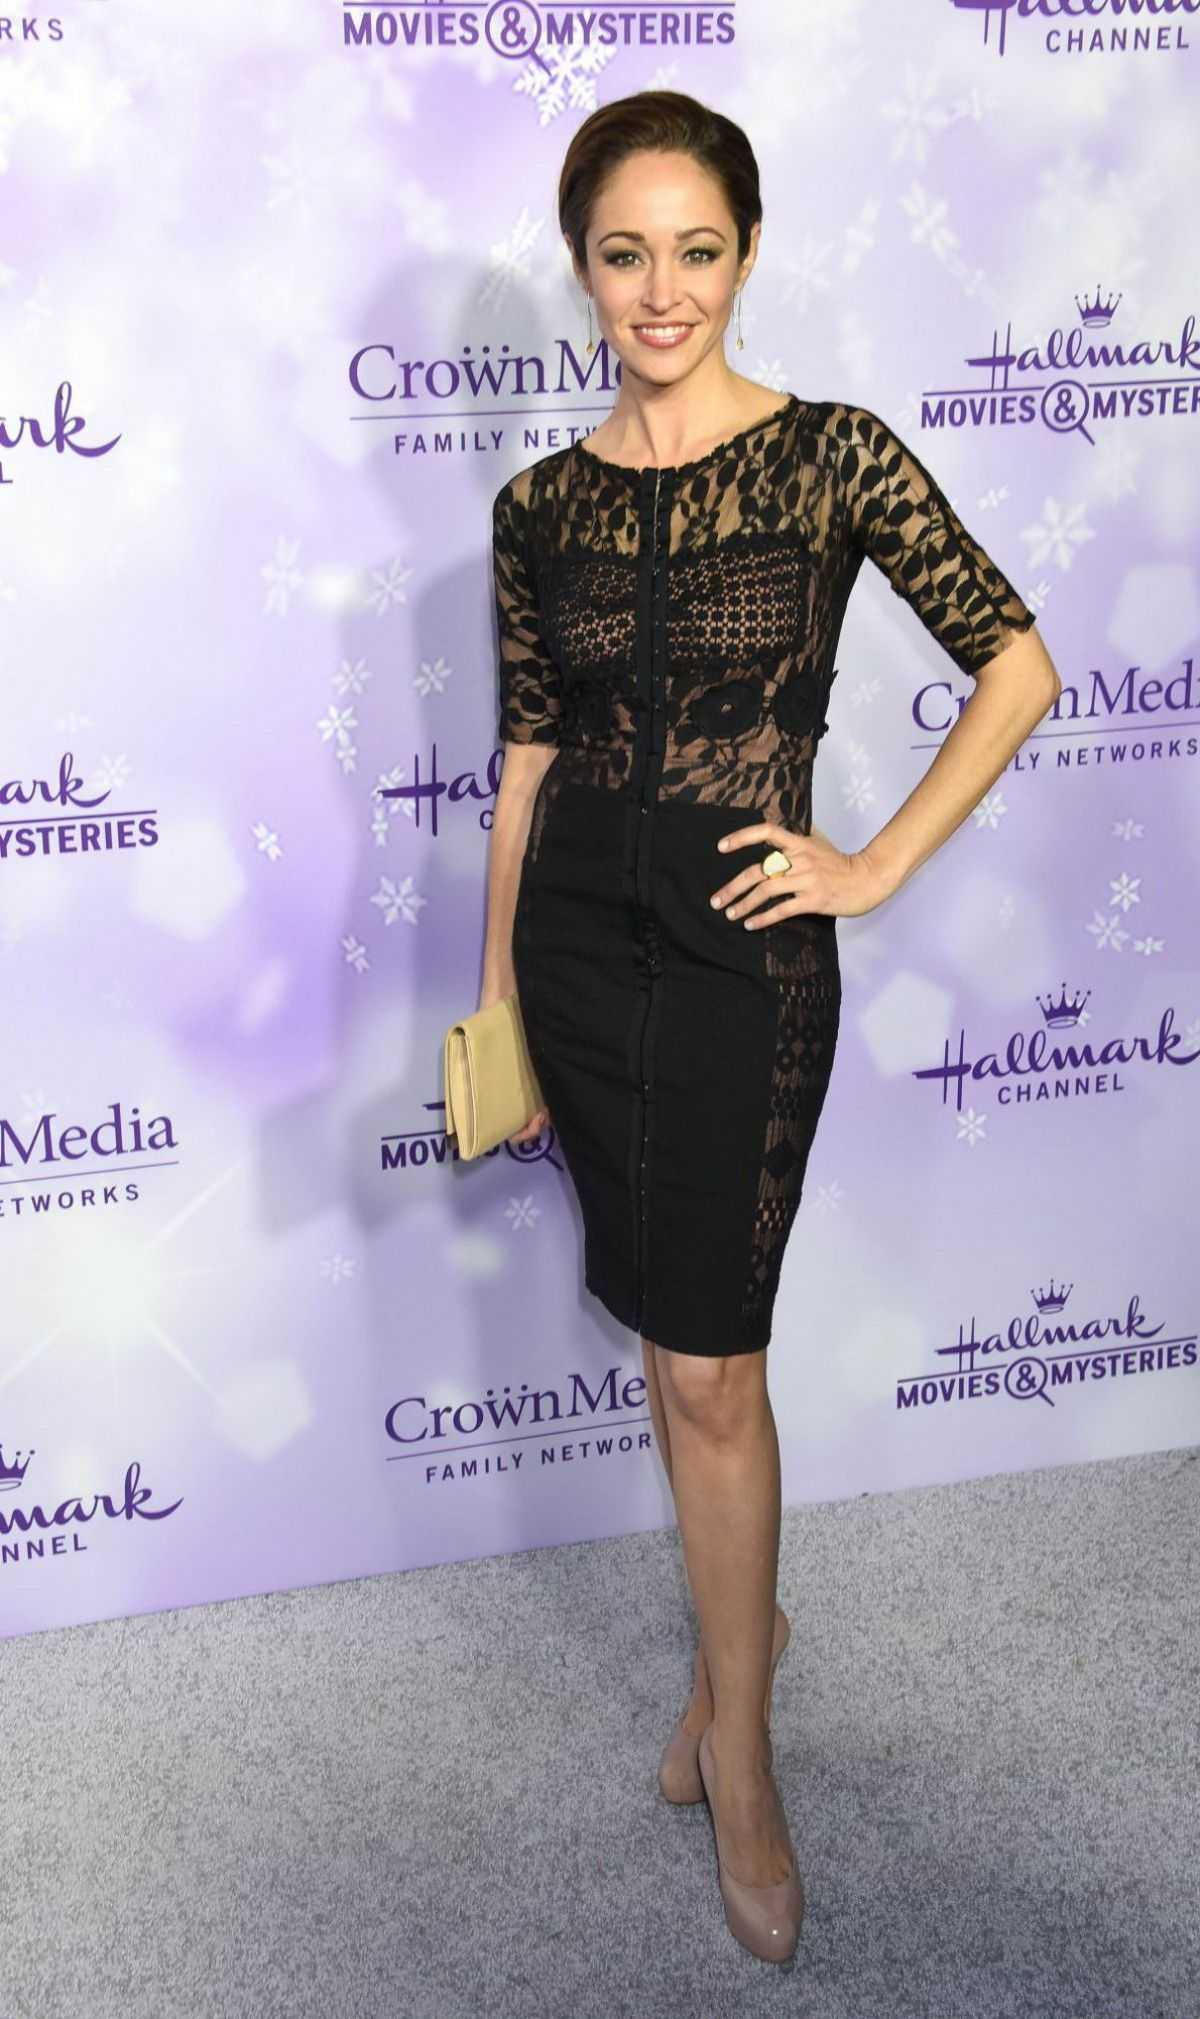 Autumn Reeser At Hallmark Channel Party At 2016 Winter TCA Tour In Pasadena